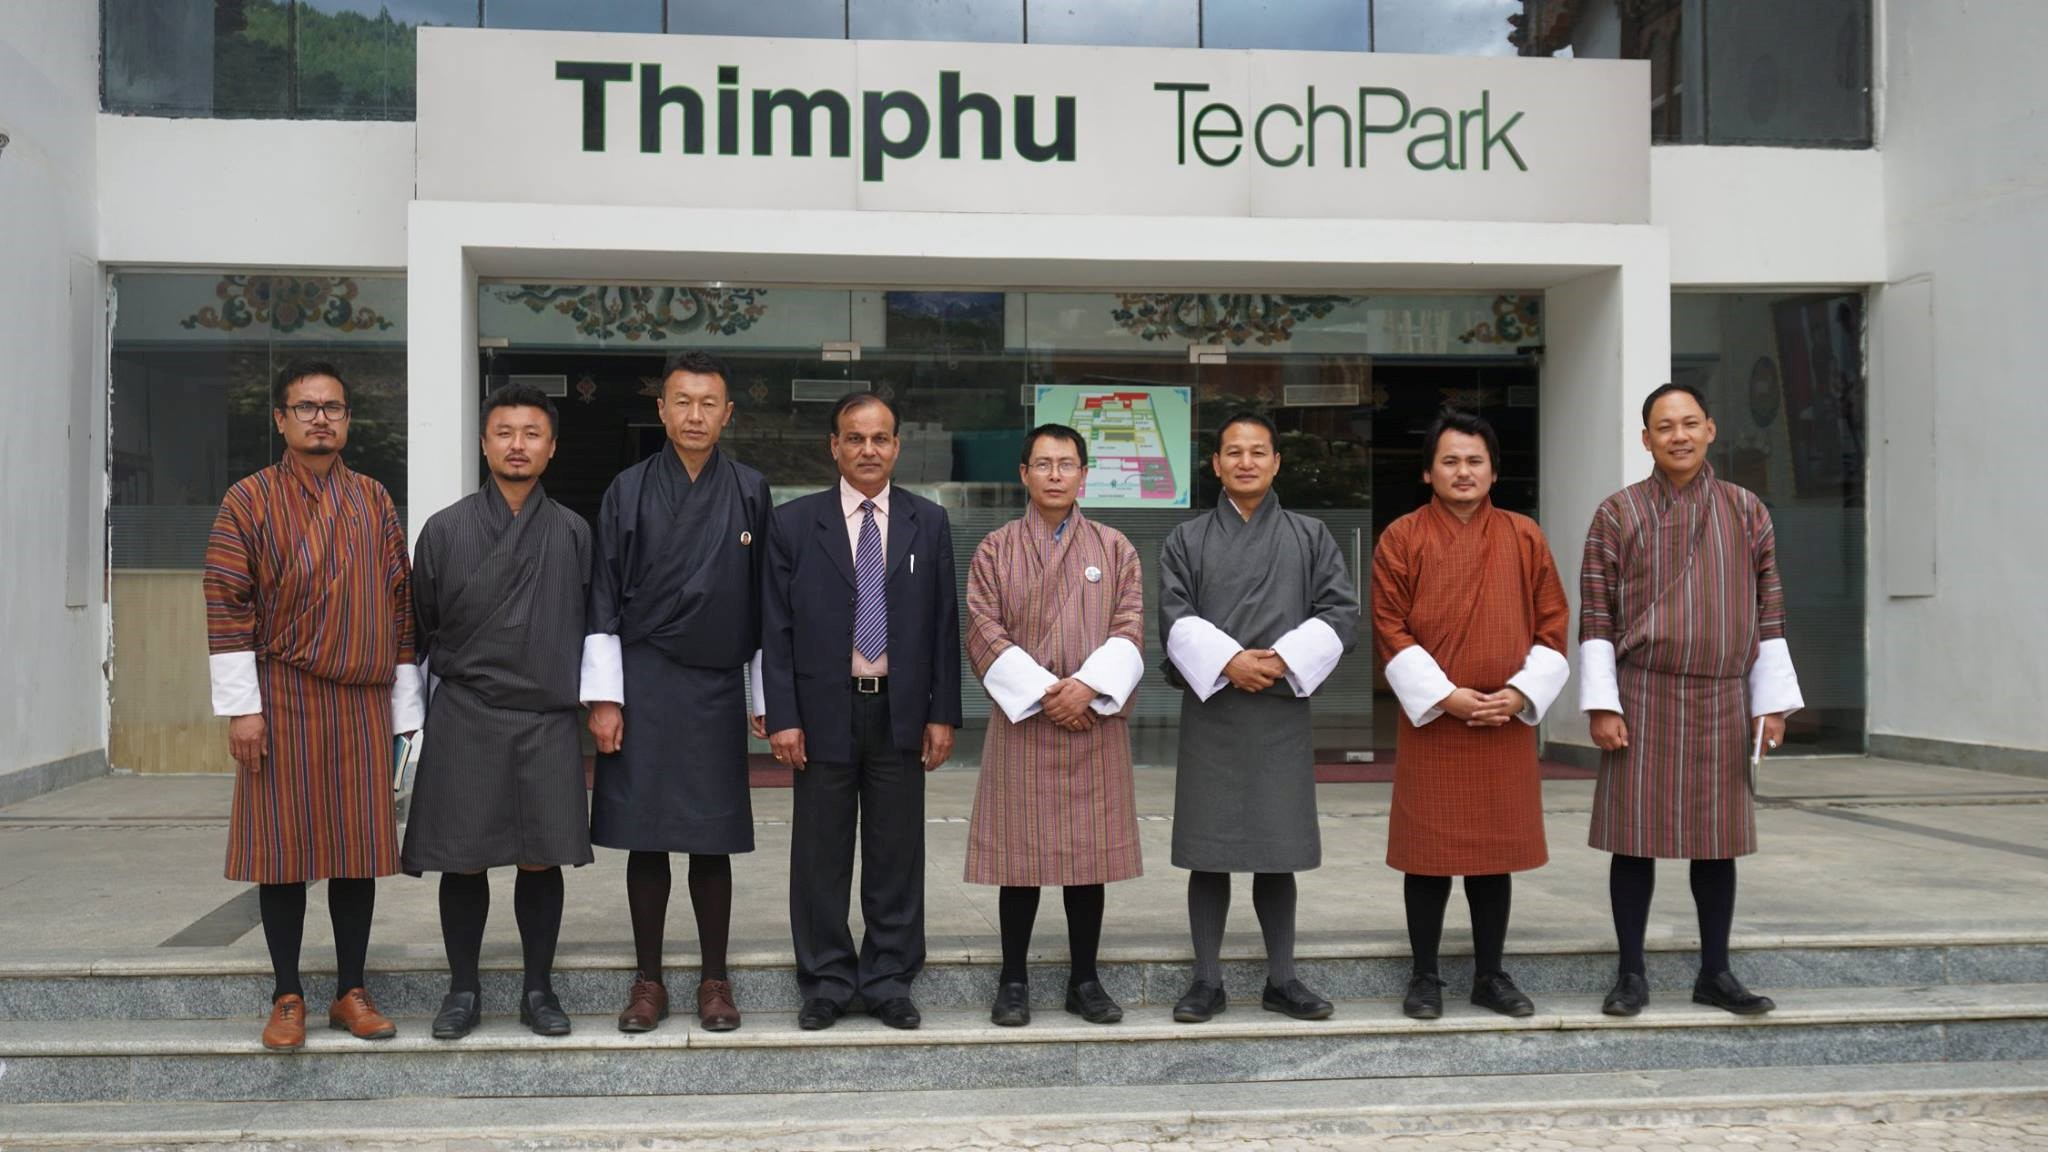 Visit to Tech Park, Thimphu